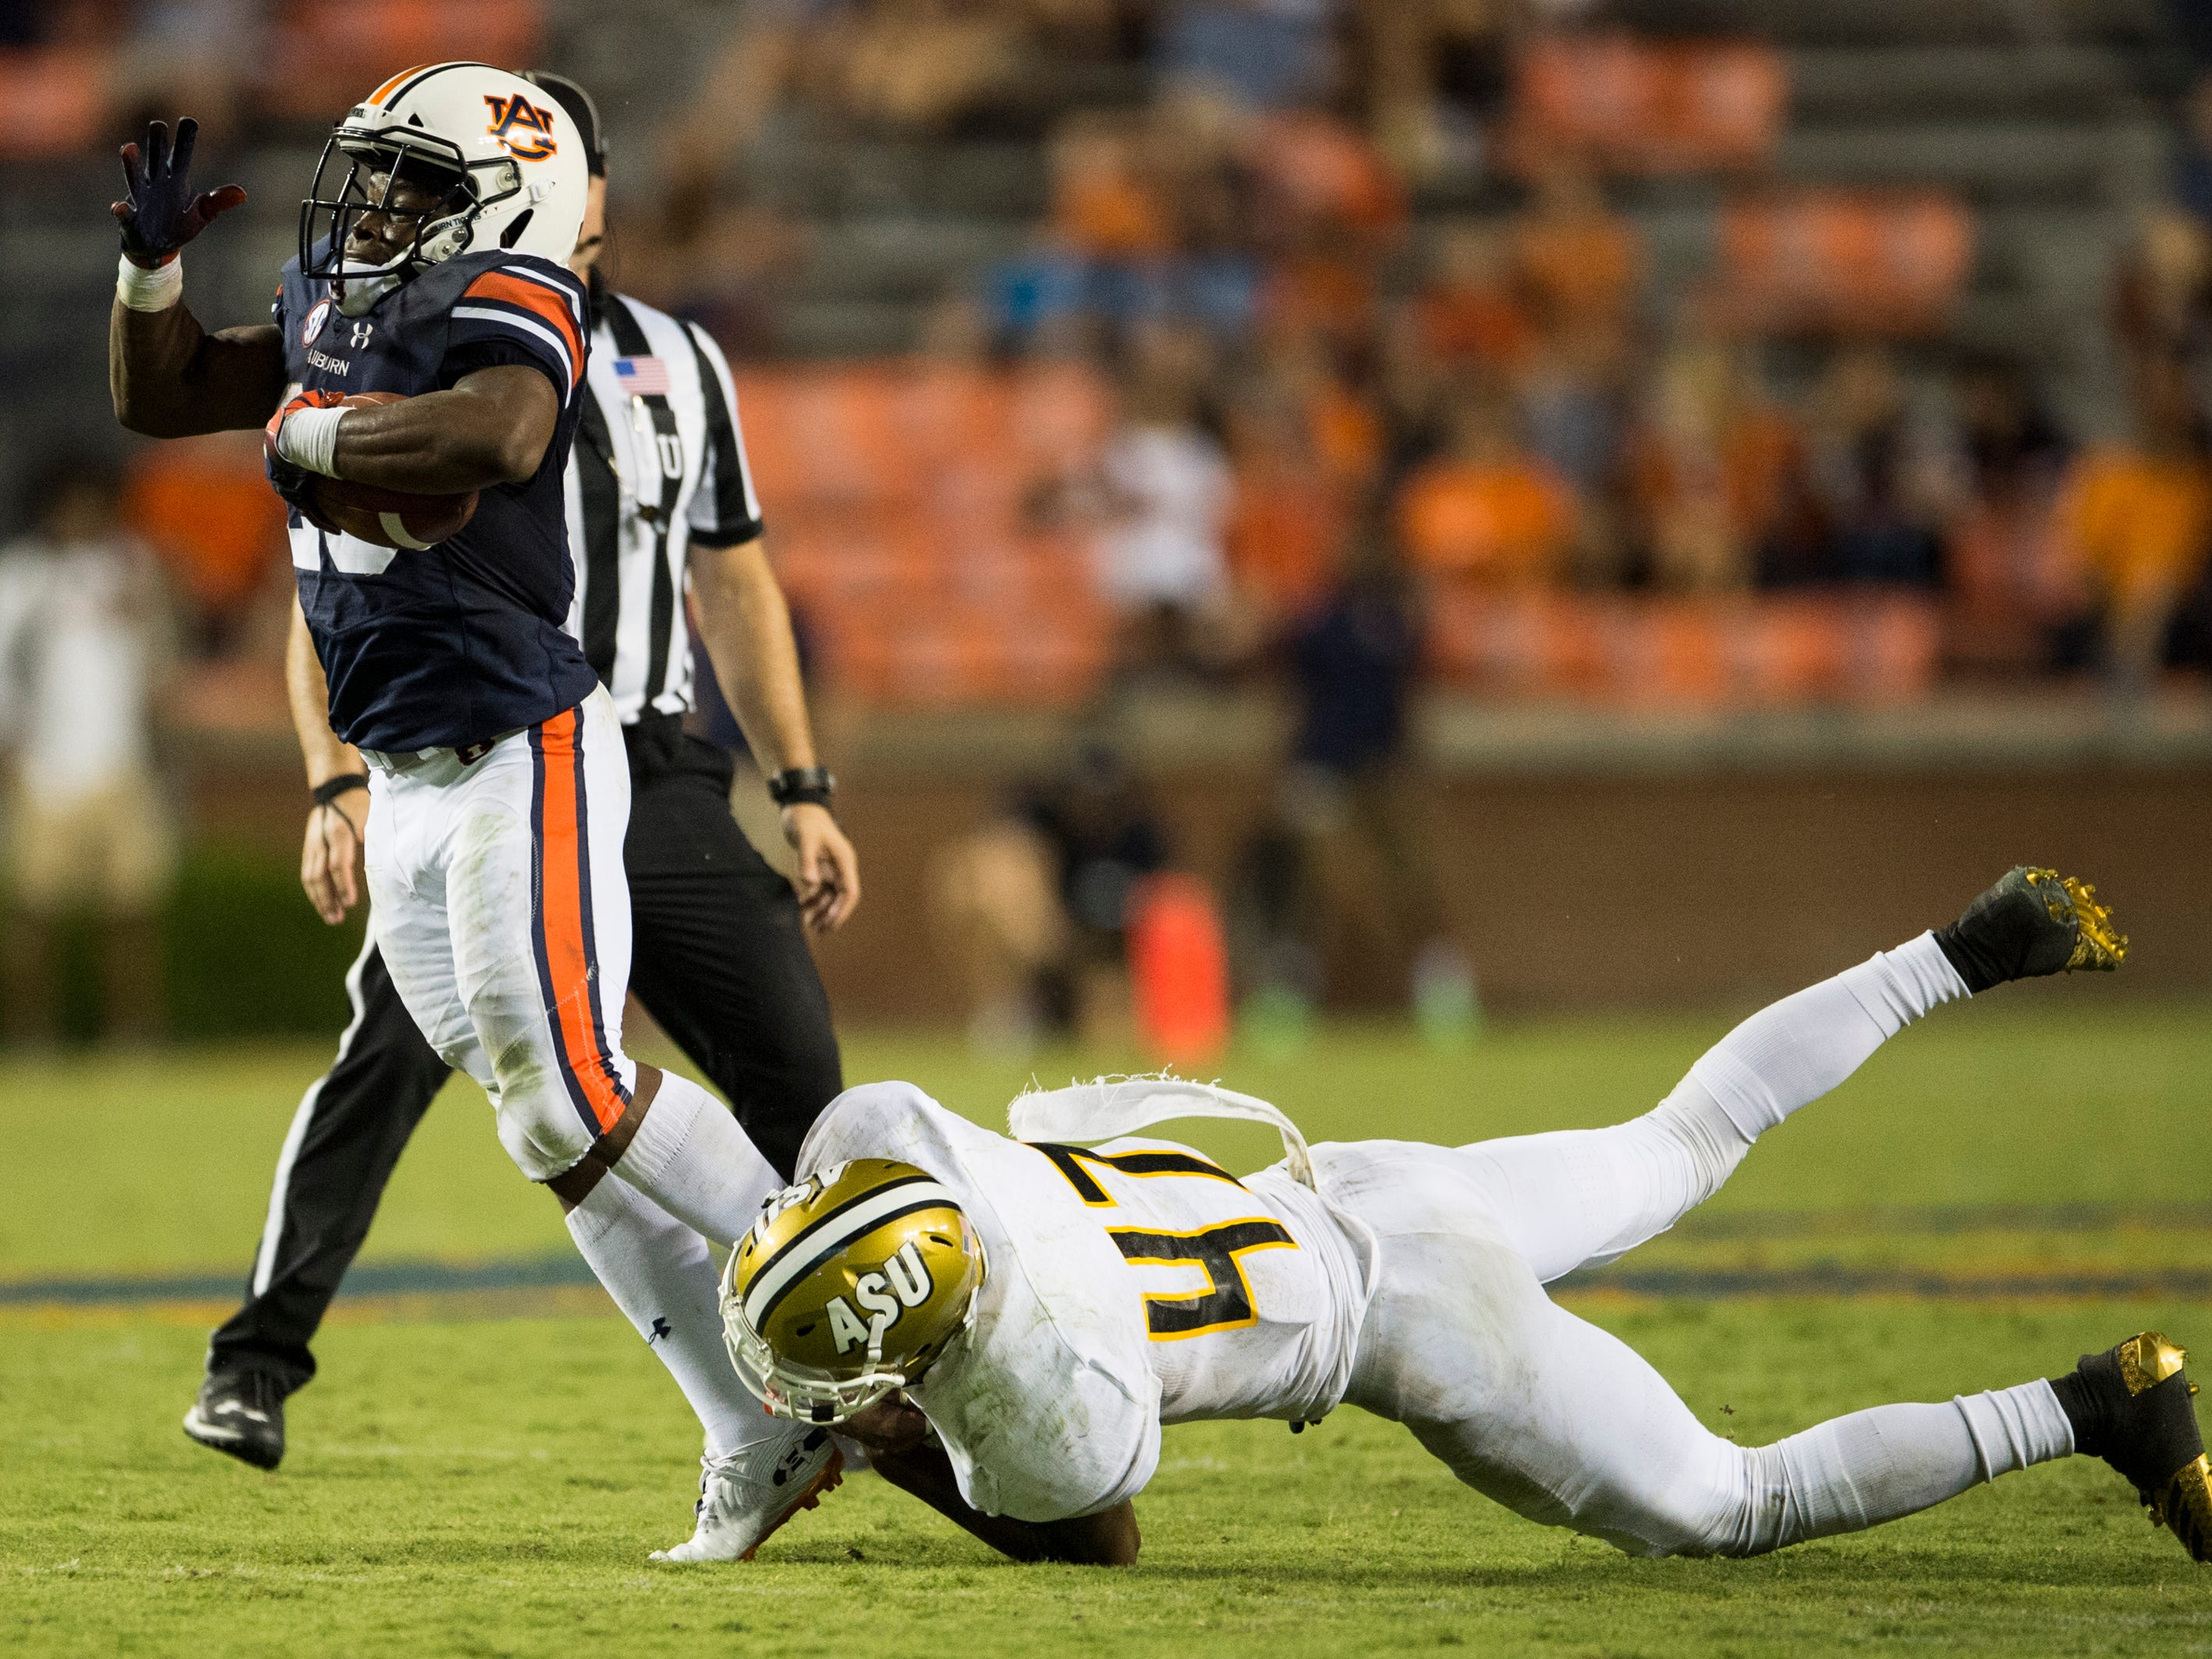 Auburn's Shaun Shivers (25) is tripped up by Alabama State's Kurron Ramsey (47) at Jordan-Hare Stadium in Auburn, Ala., on Saturday, Sept. 8, 2018. Auburn defeated Alabama State 63-9.